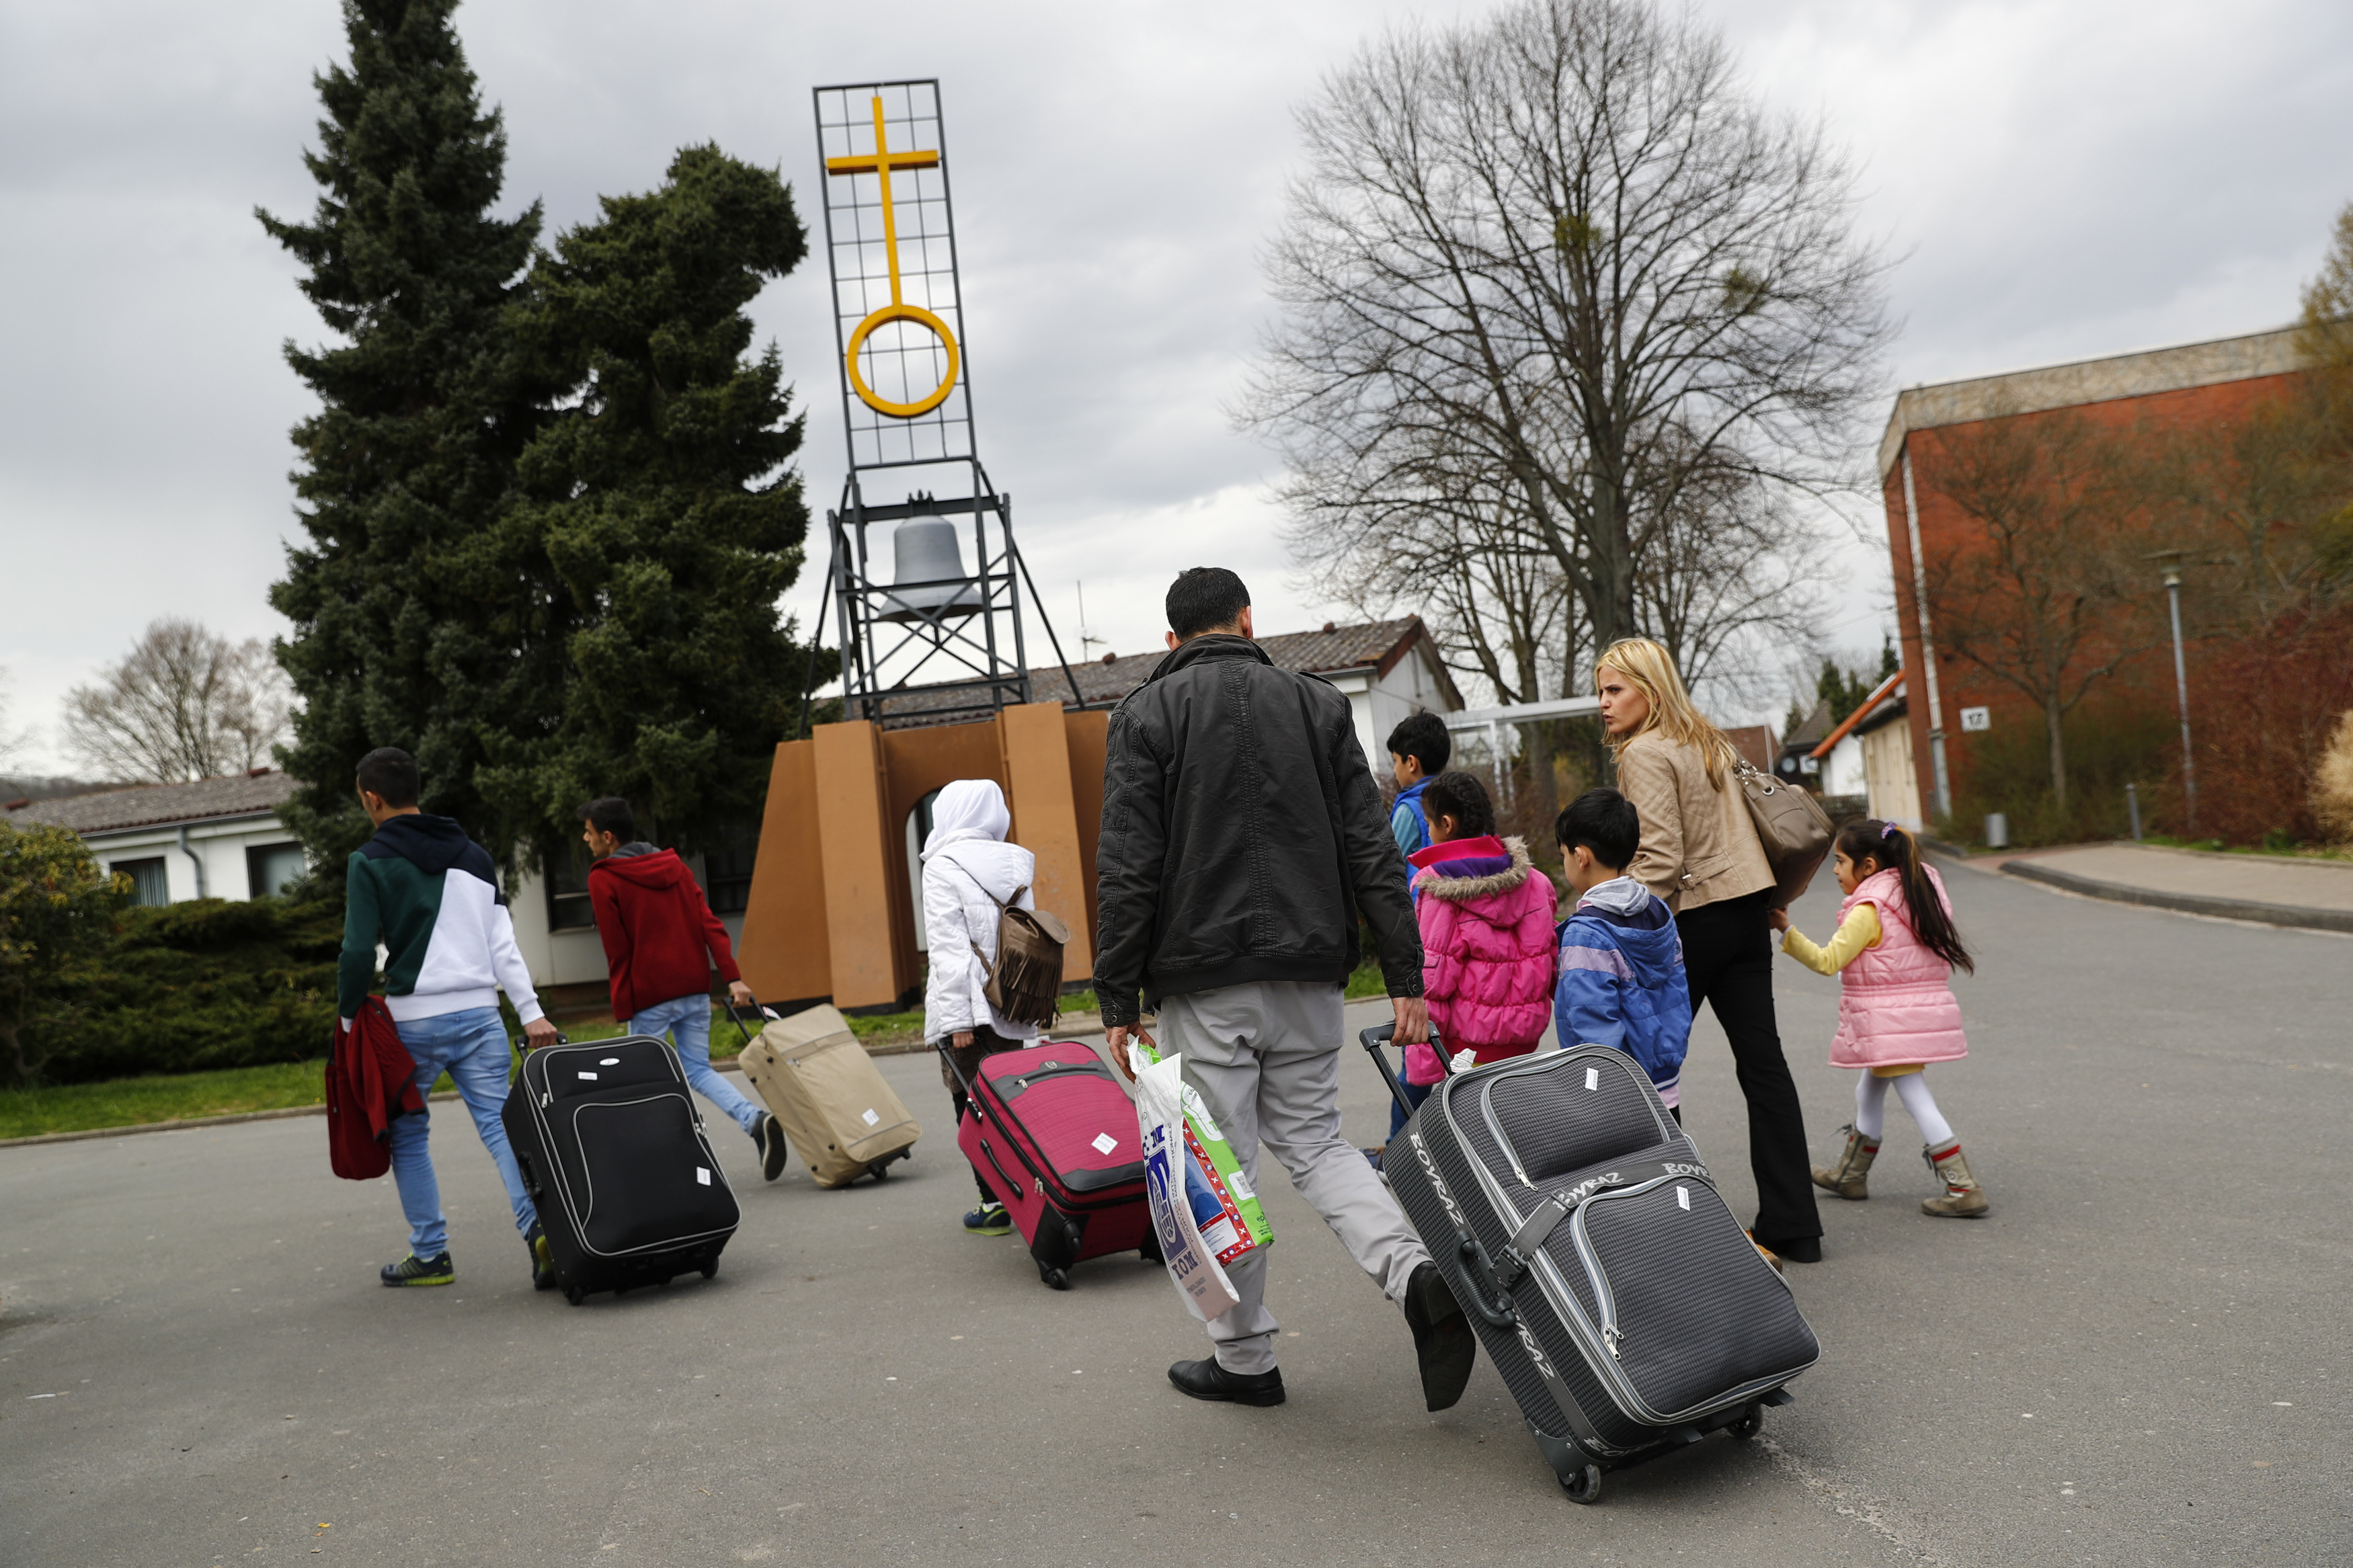 Syrian refugees arrive at the camp for refugees and migrants in Friedland, Germany April 4, 2016. The first group of Syrian refugees arrived in Germany by plane from Turkey under a new deal between the European Union and Ankara to combat human trafficking and bring migration under control, German police said on Monday.